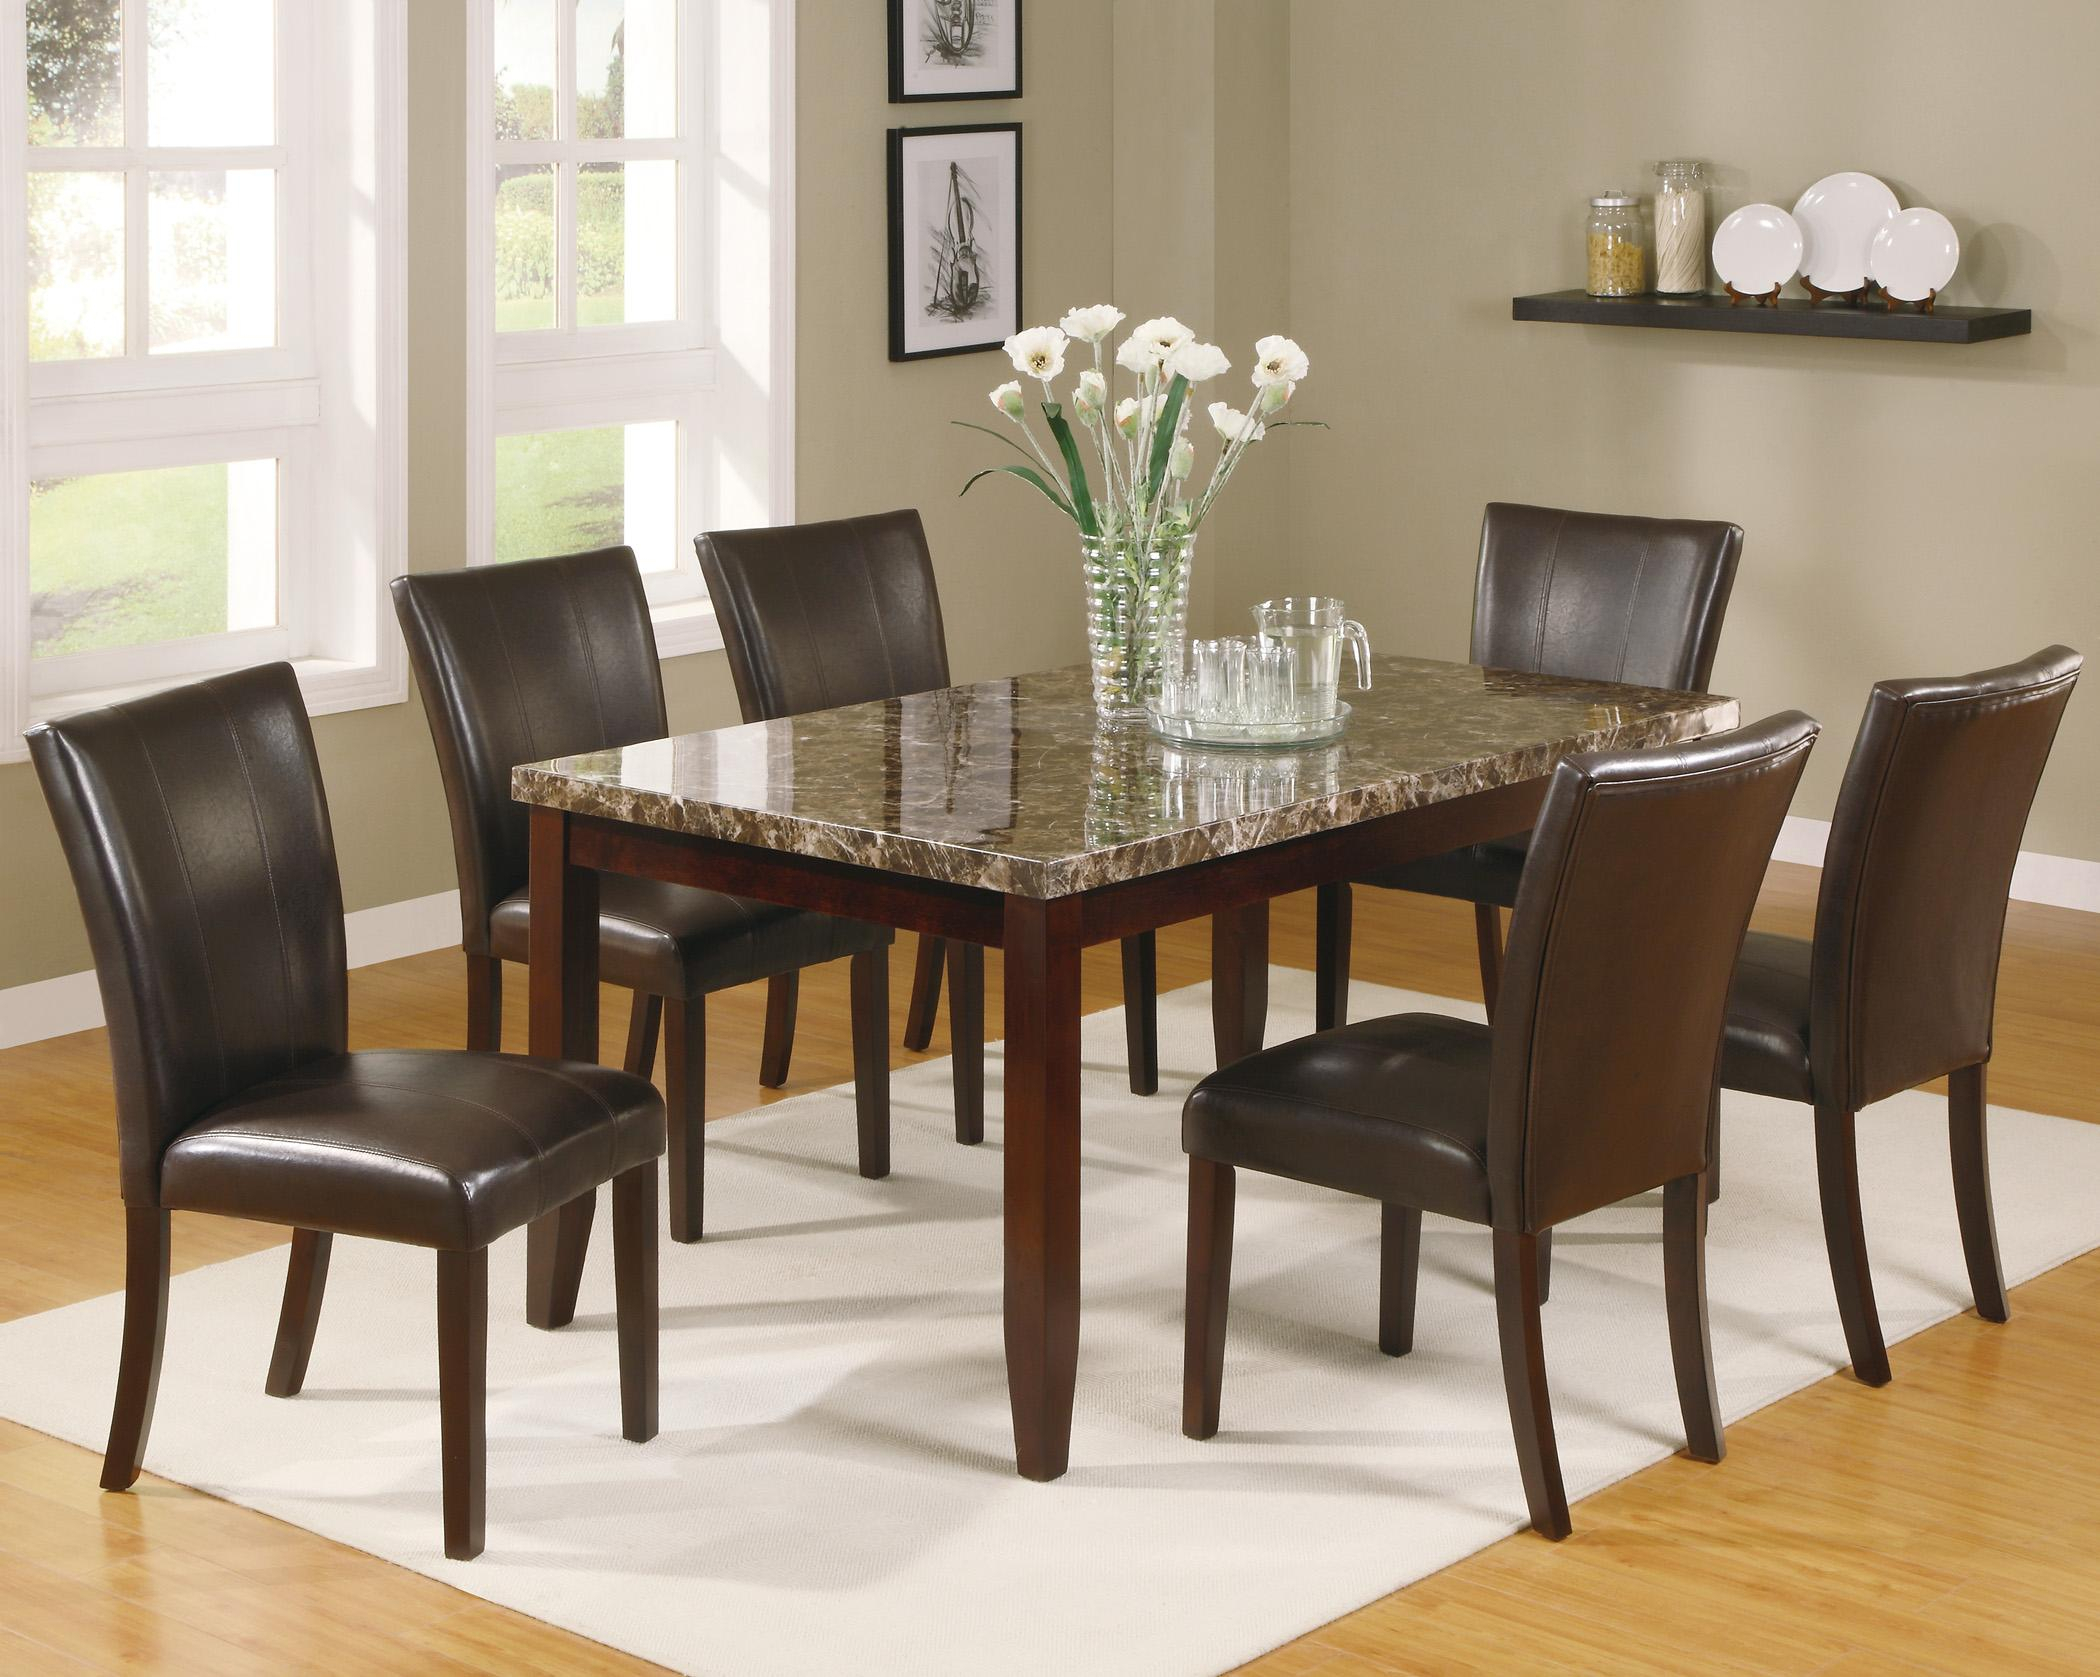 Ferrara 7 Piece Dining Table And Chairs Setcrown Mark At Dunk & Bright Furniture Throughout Newest Cargo 5 Piece Dining Sets (View 18 of 20)